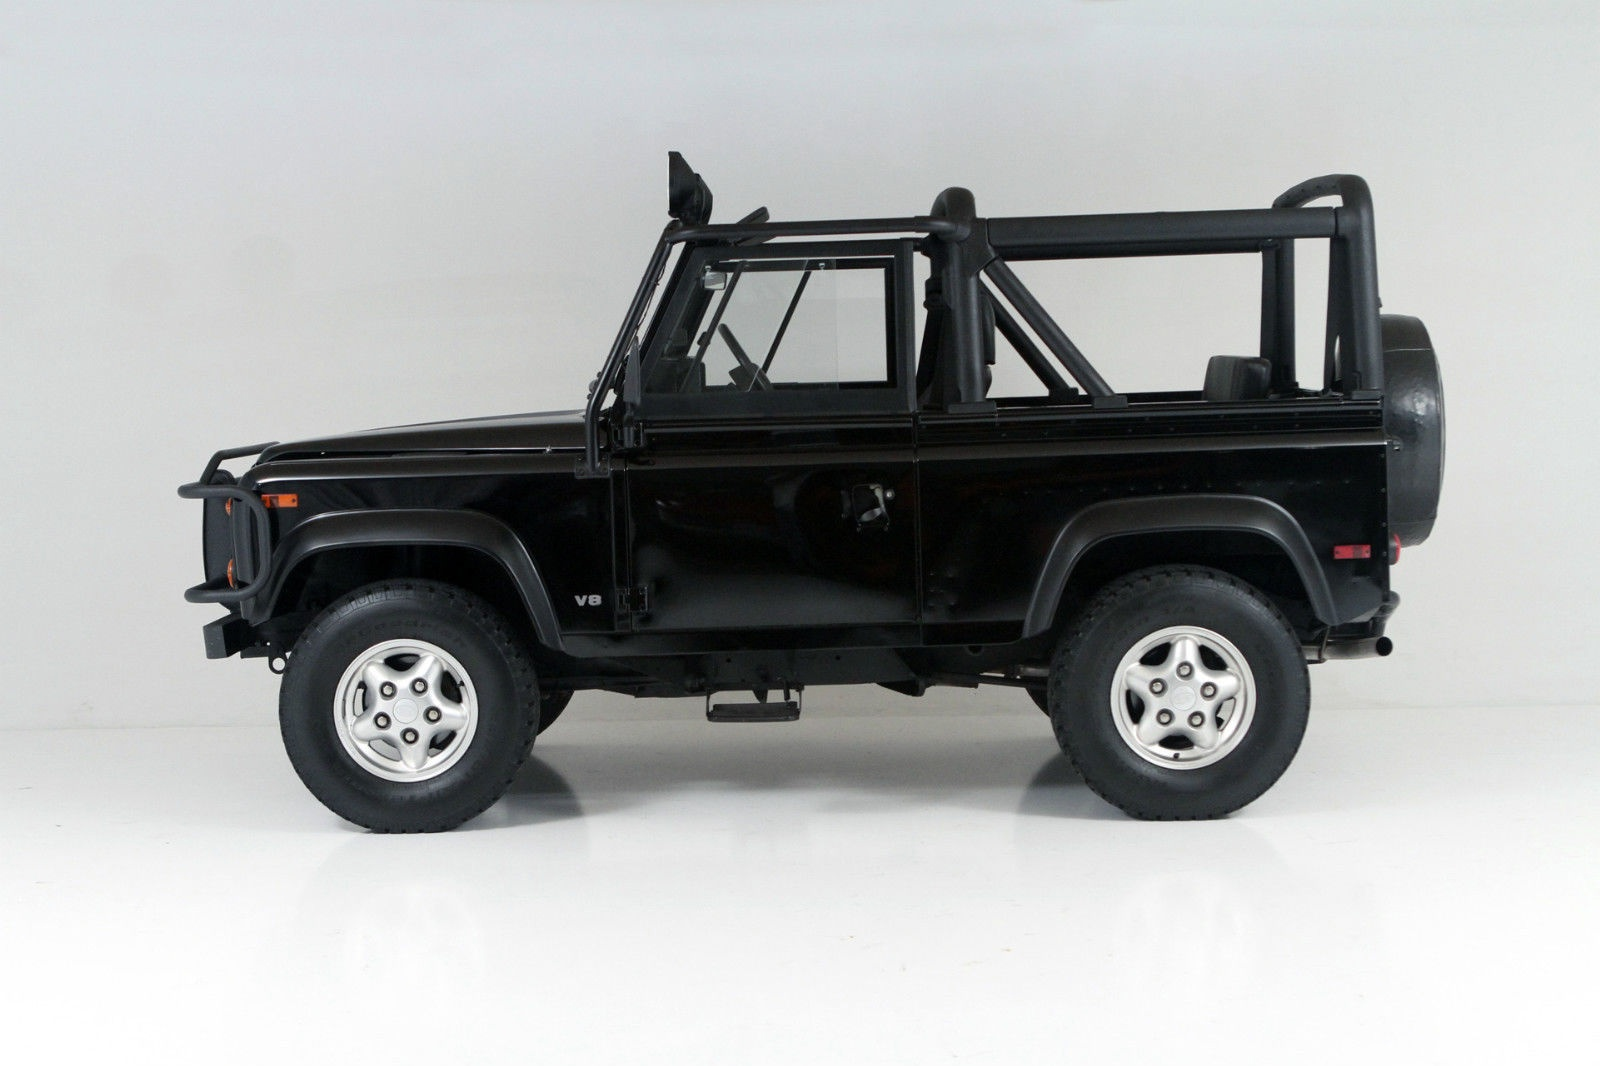 land landrover new ny dealers hyde near defender c stock park l for used htm main sale rover